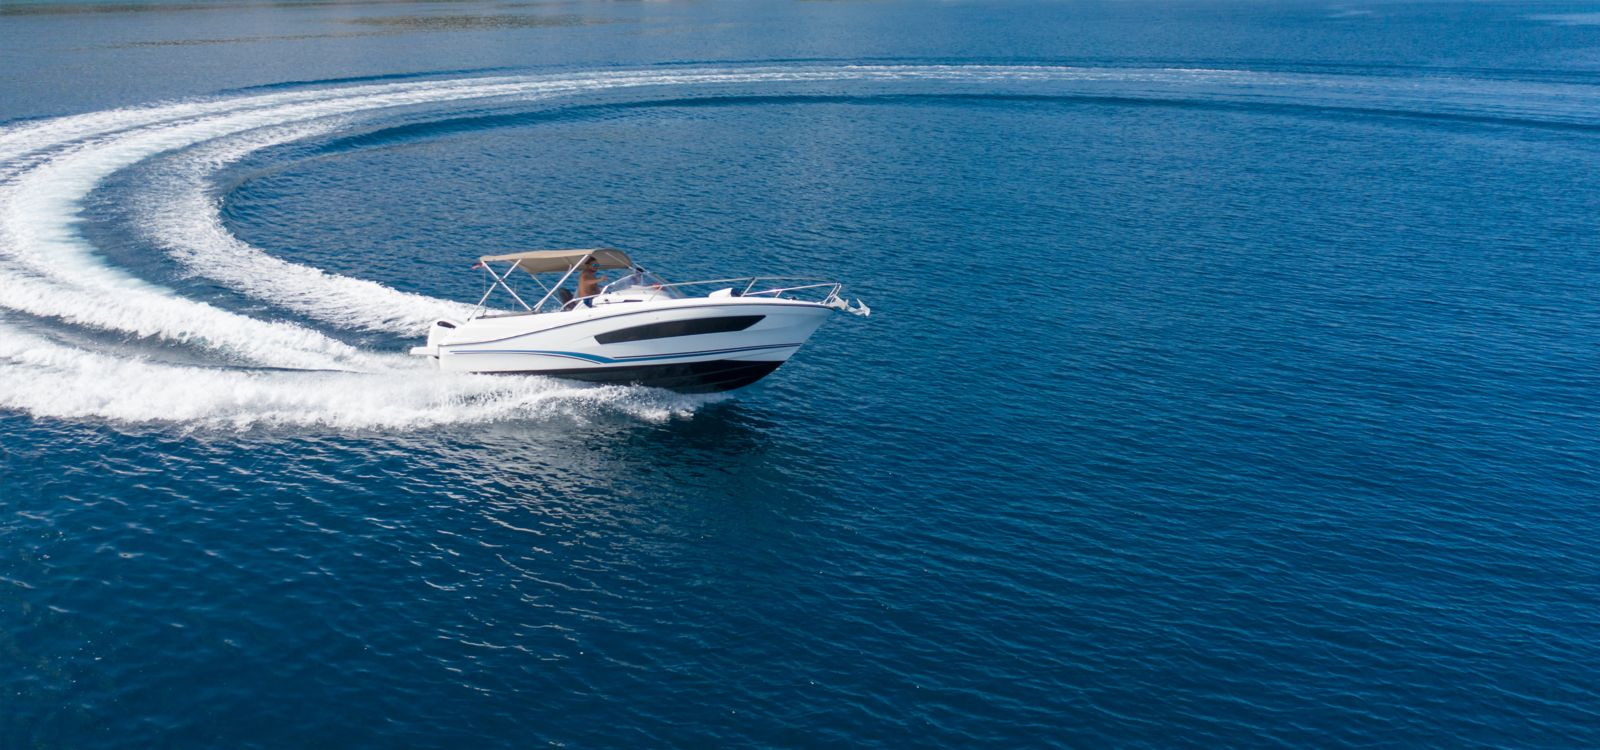 bloomfield hills boating accident attorneys